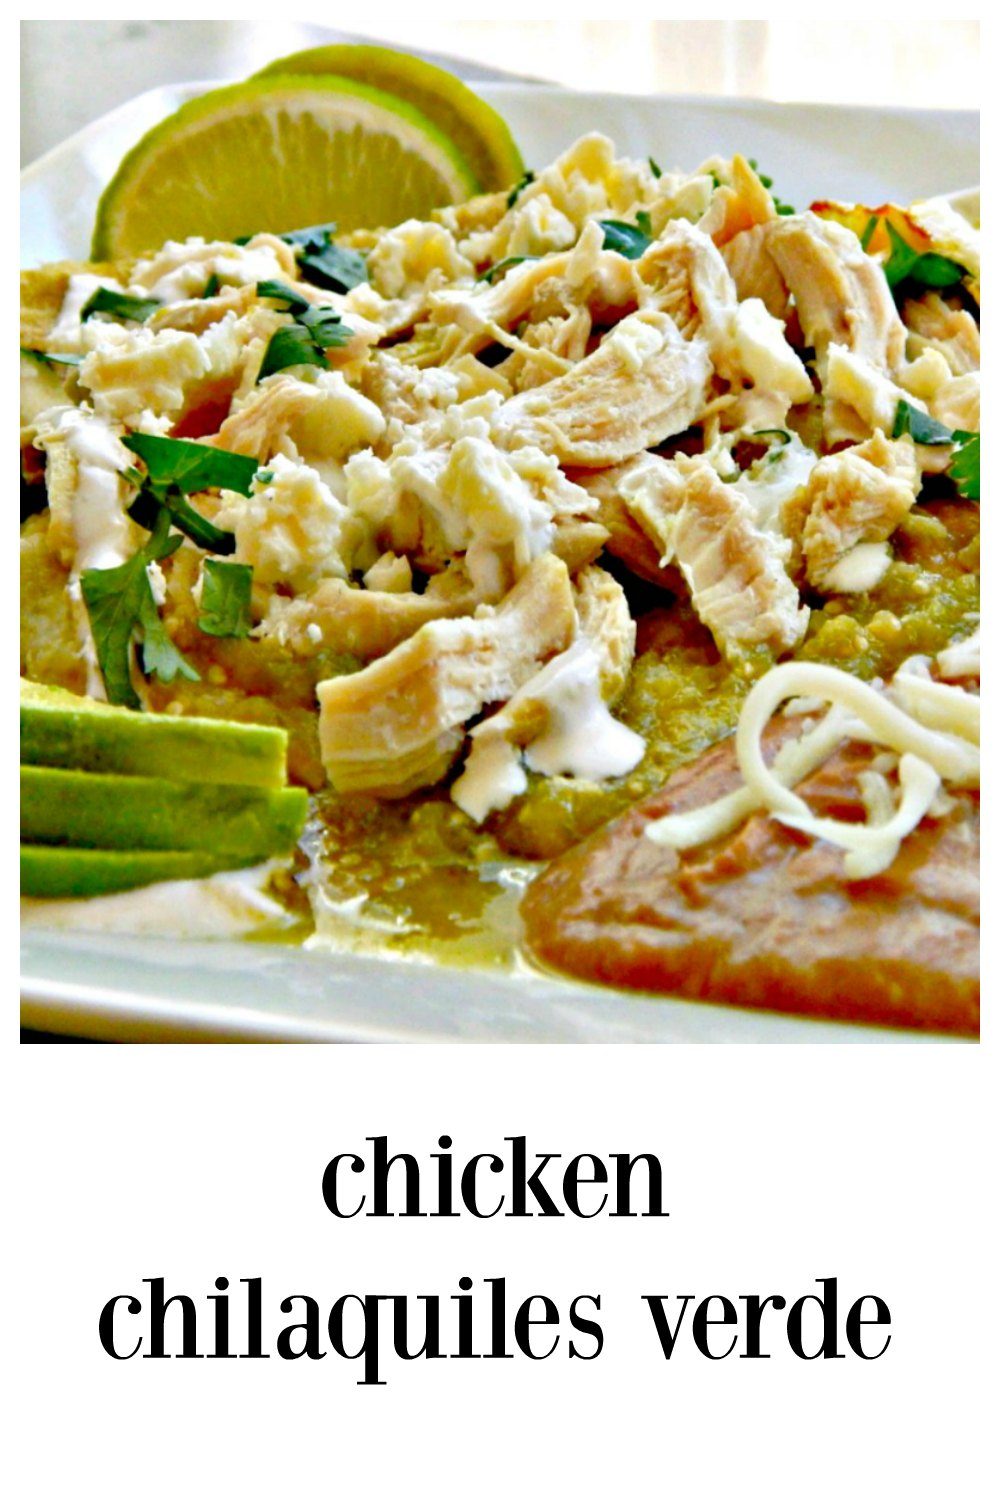 Chicken Chilaquiles Verde, perfect for brunch. Shredded Chicken (or turkey works, too) Tortilla Chips and a bright, tangy Green Tomatillo sauce. Top with cheese, avocado & an egg and serve with refried beans. It's amazing and almost like having nachos, only better and better for you! #Chilaquiles #ChickenChilaquiles #ChickenChilaquilesVerde #TurkeyChilaquiles #ChickenLeftovers #TurkeyLeftovers